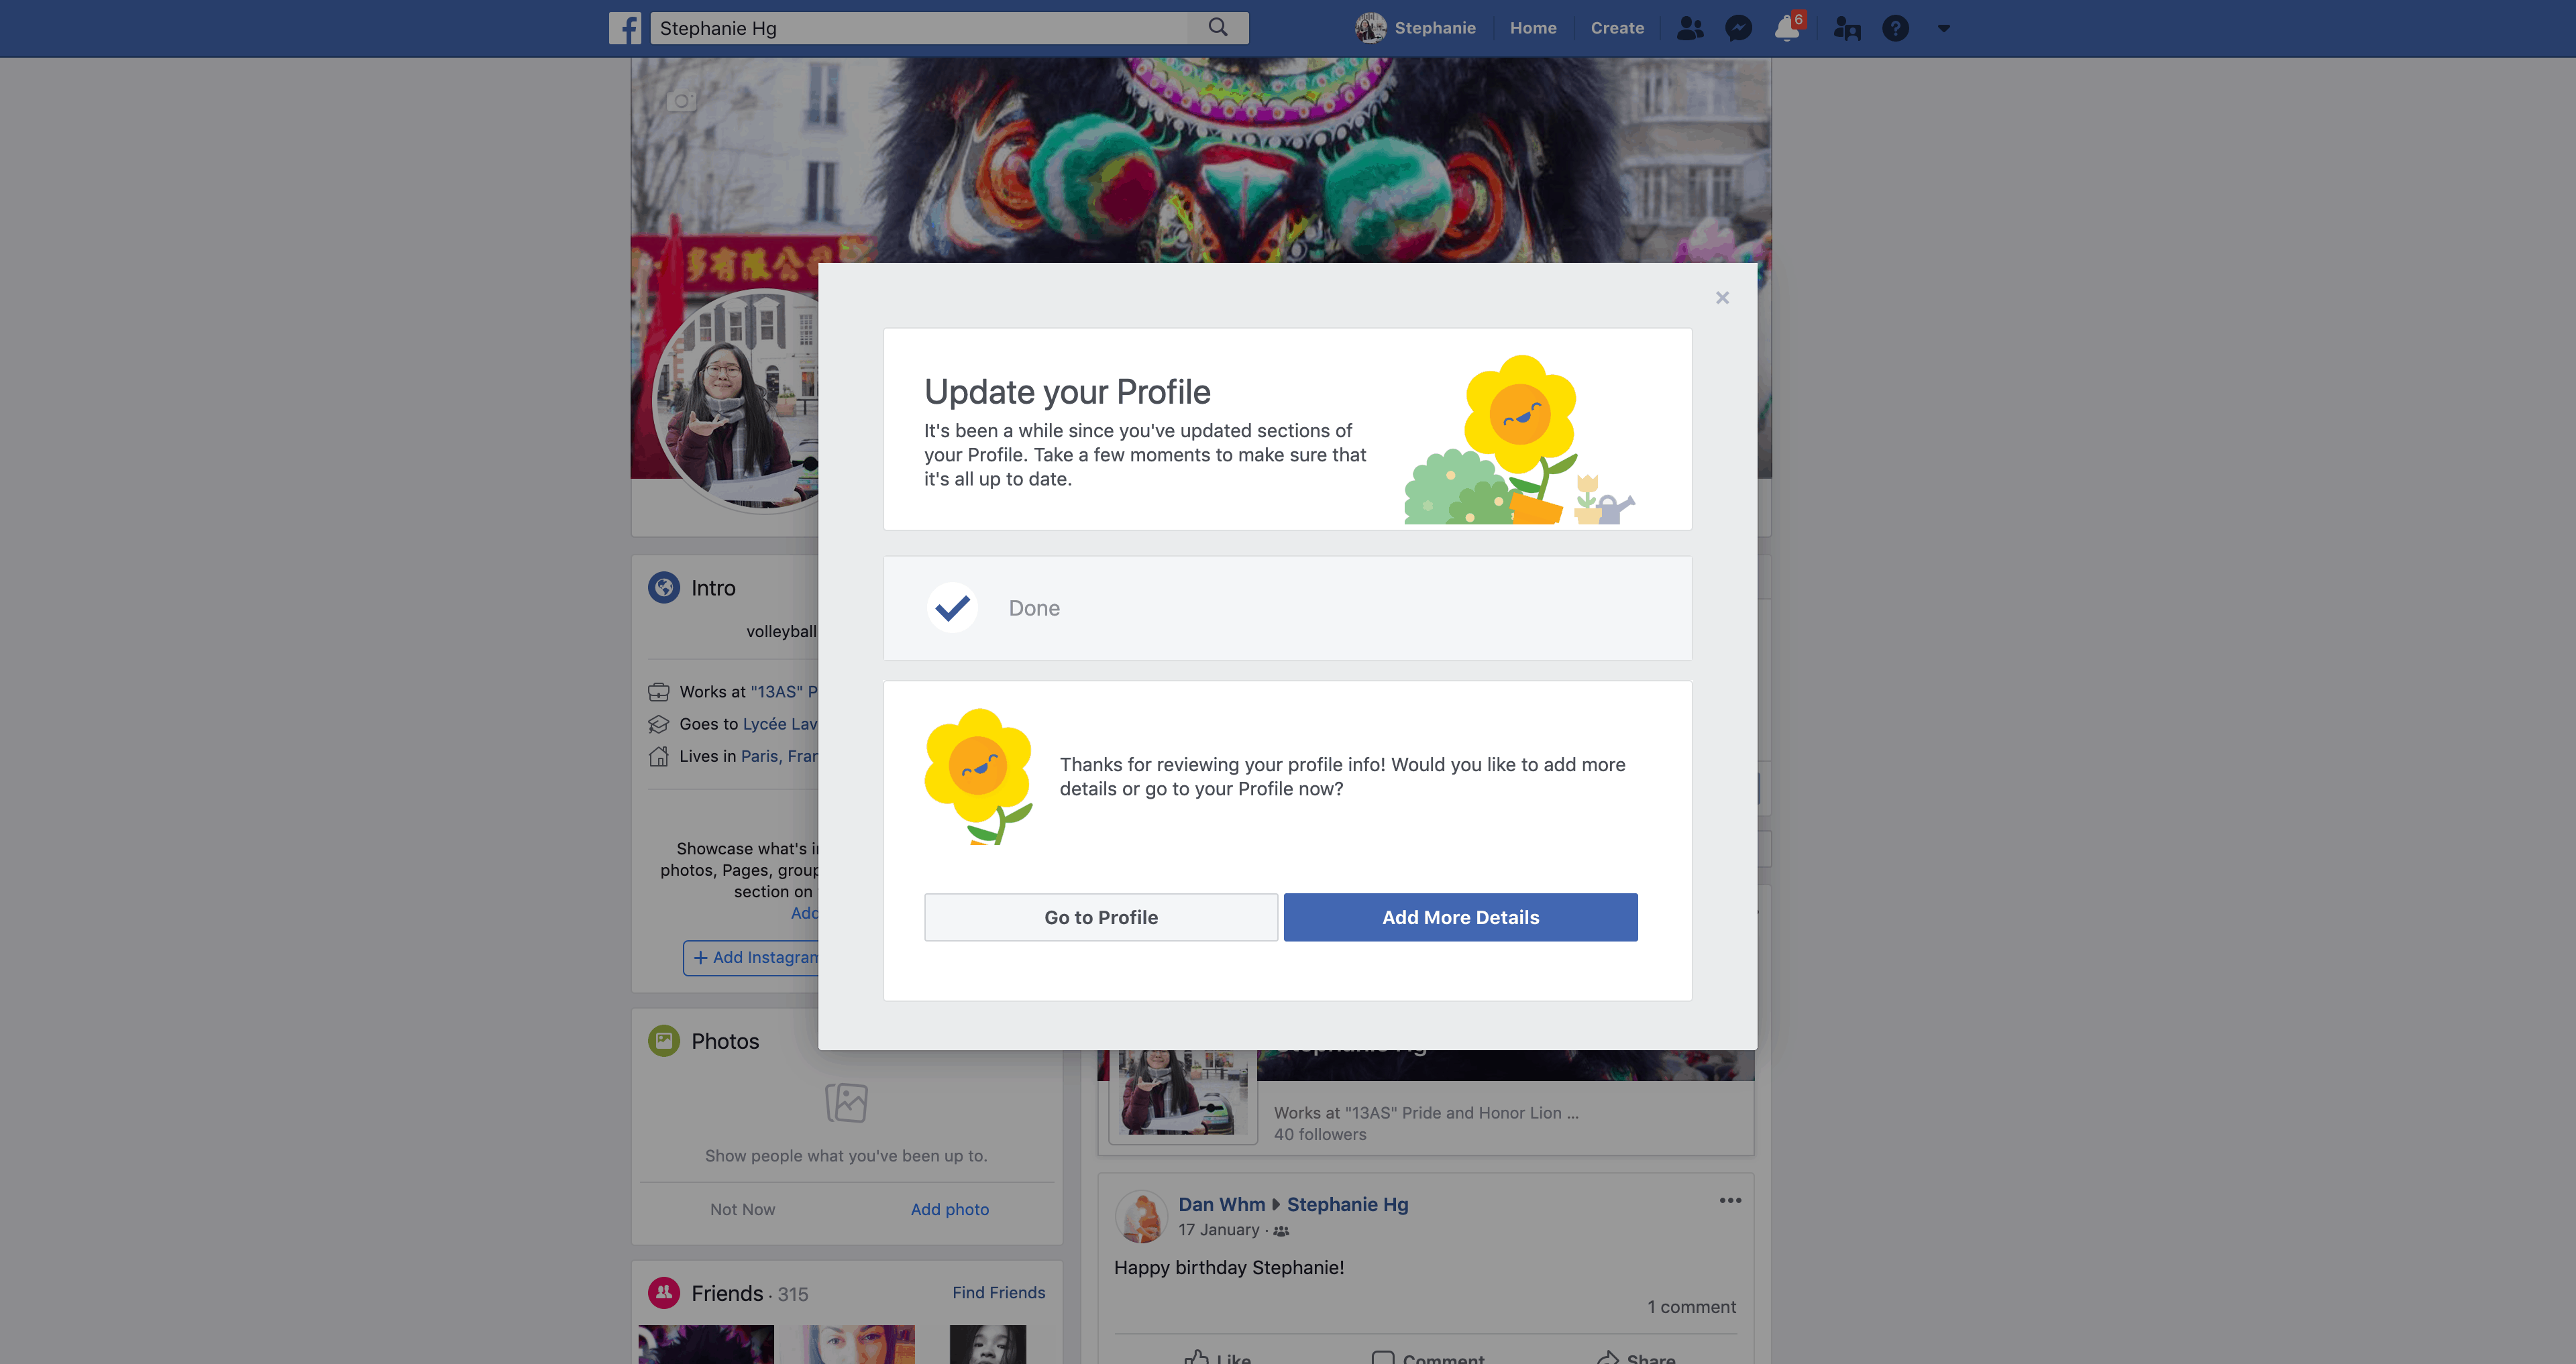 Update Profile by Facebook